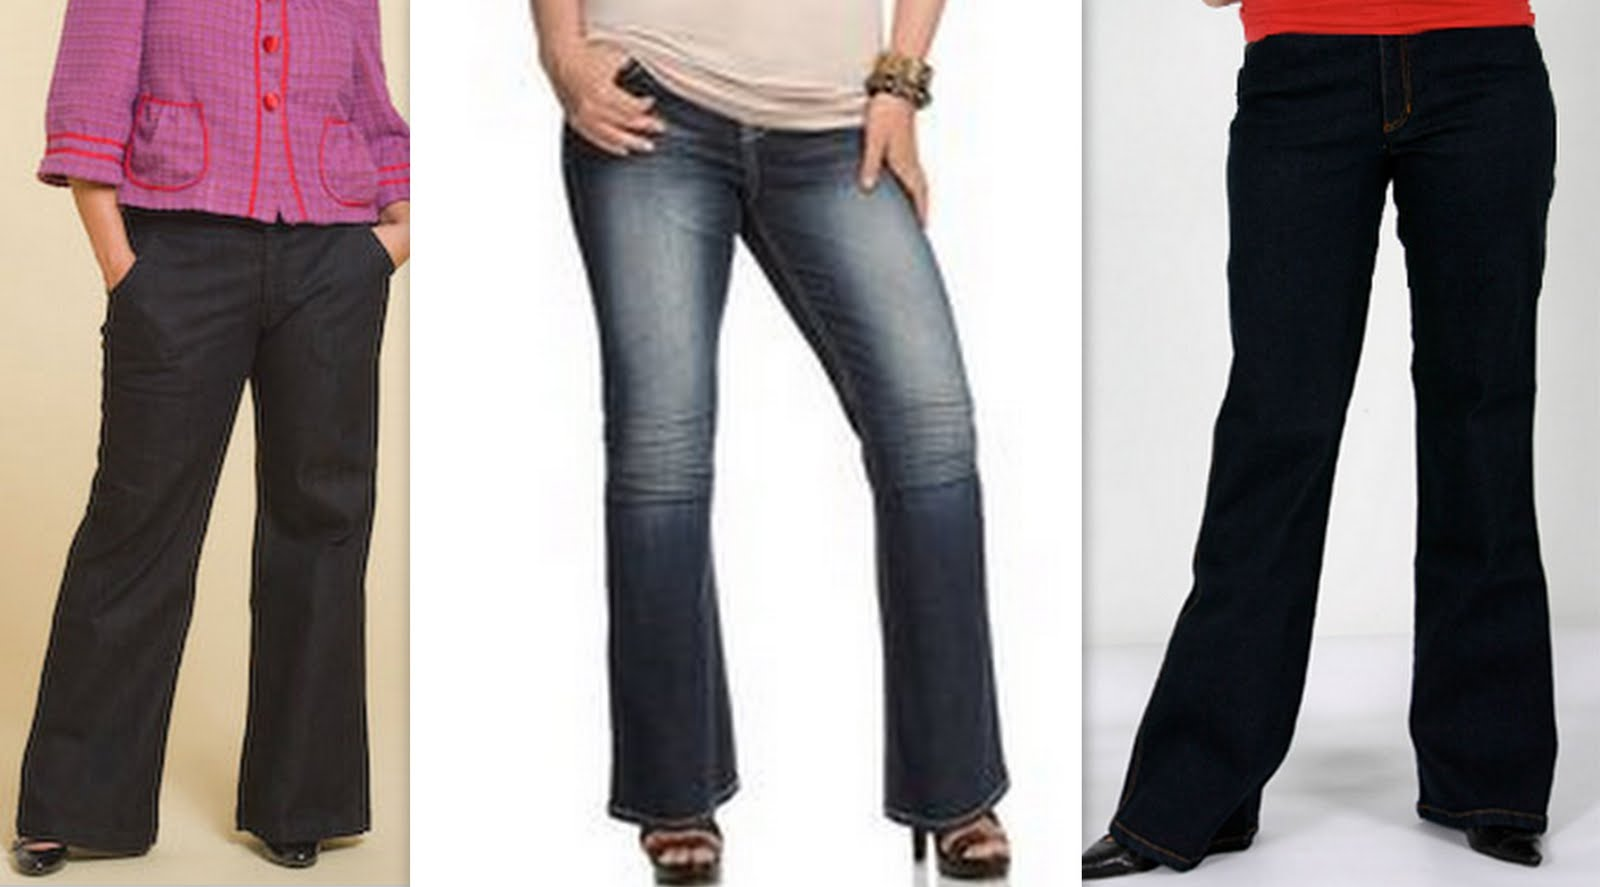 Not So Usual: The Skinny on Jeans